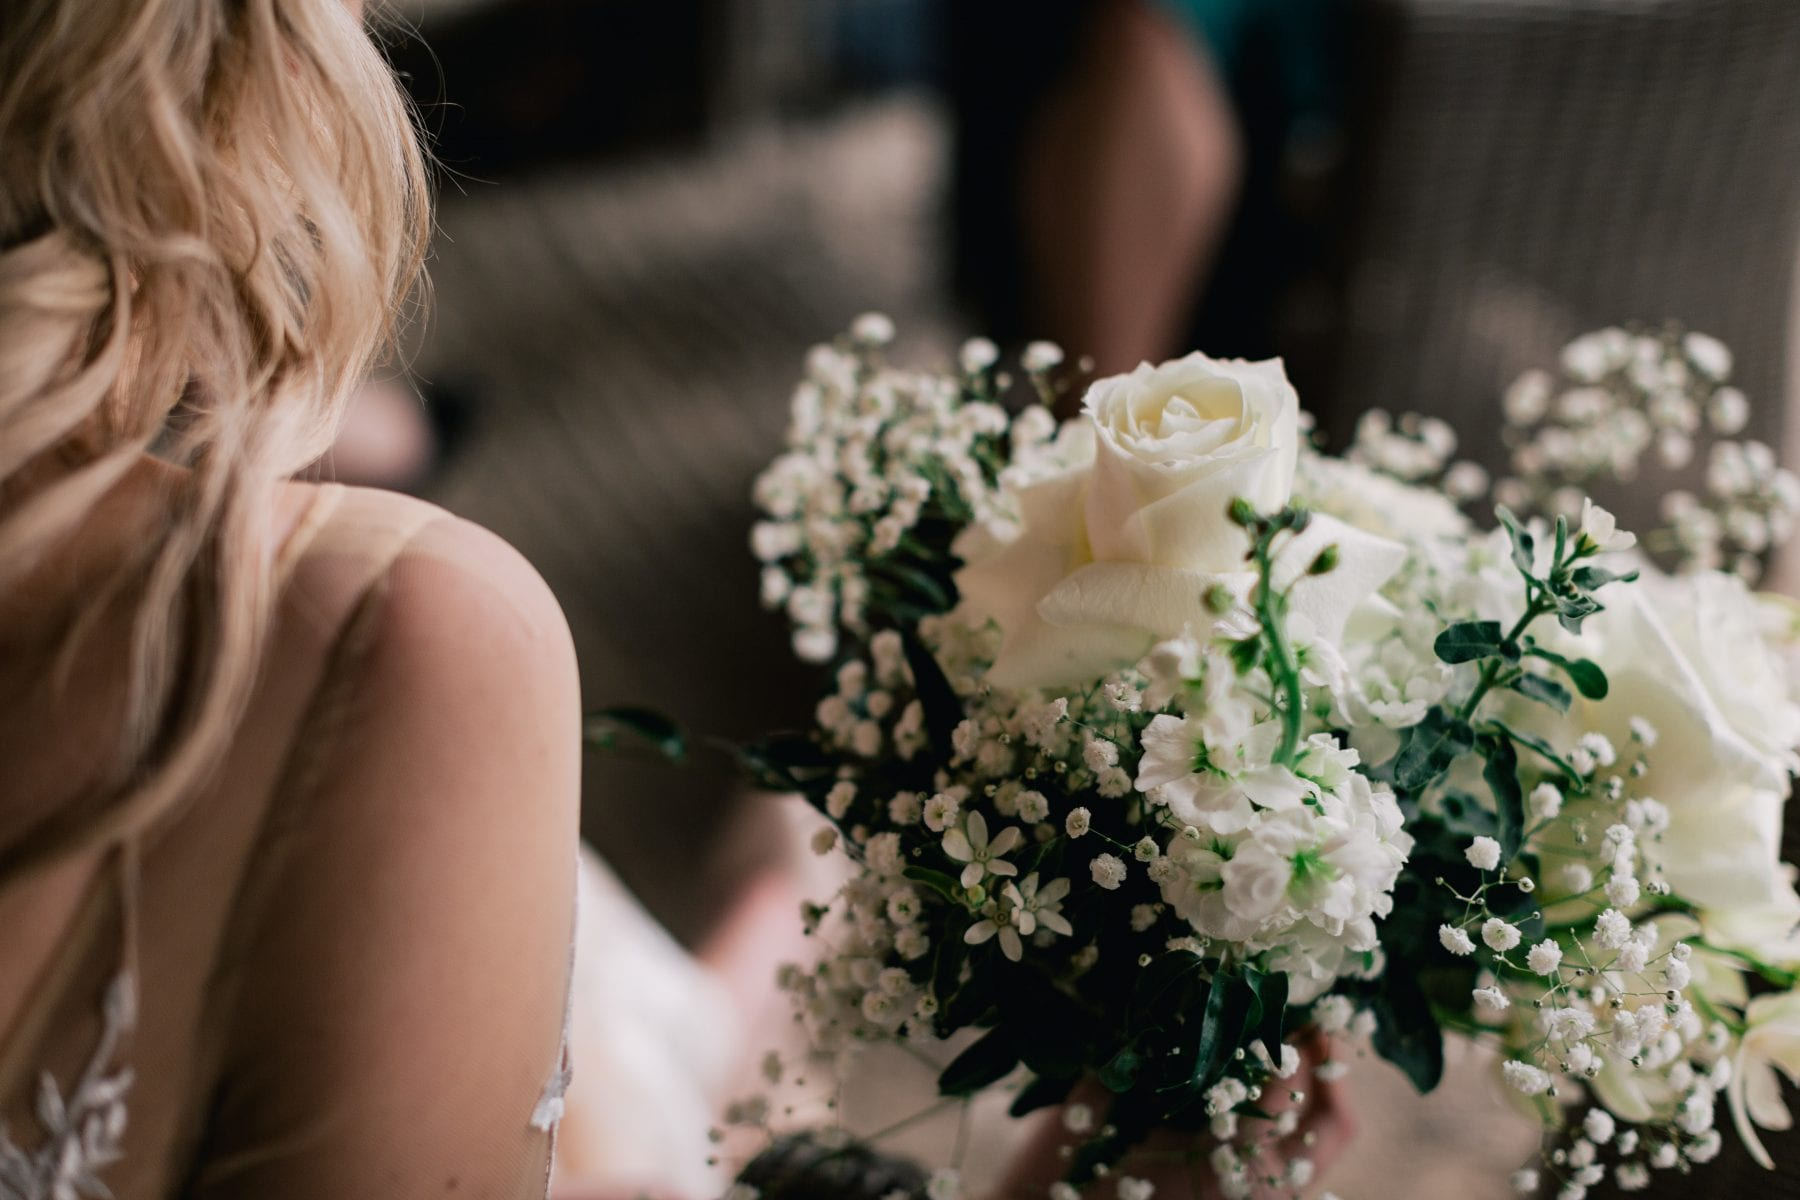 On My Hand Florist - Reuben and Hannah wedding - close up of beautiful bridal white bouquet